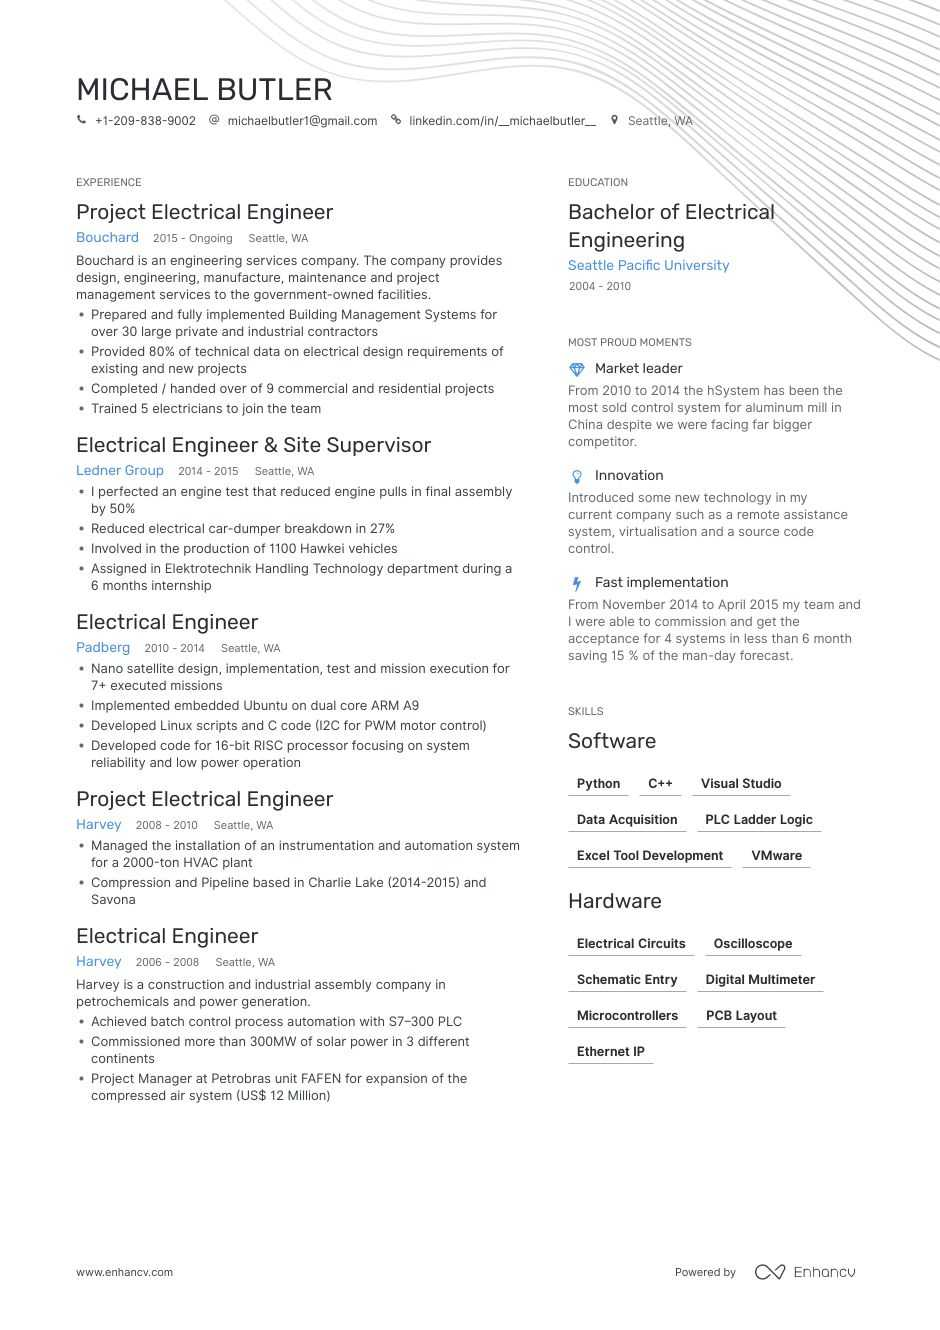 electrical engineer resume examples pro tips featured enhancv sample for ojt engineering Resume Sample Resume For Ojt Electrical Engineering Students